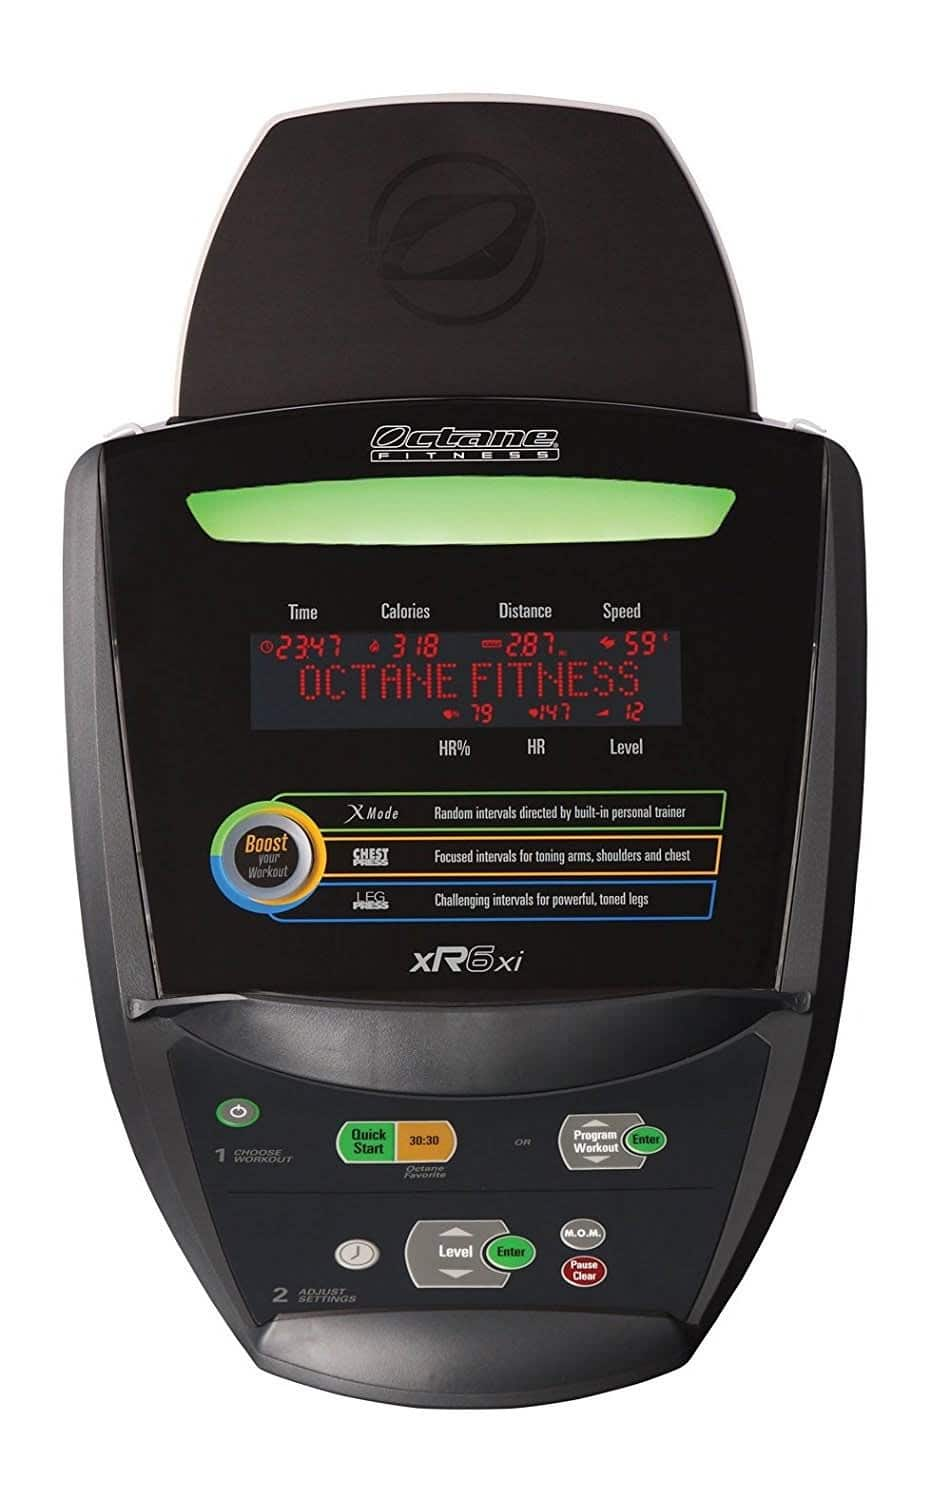 Octane Fitness xR6xi console